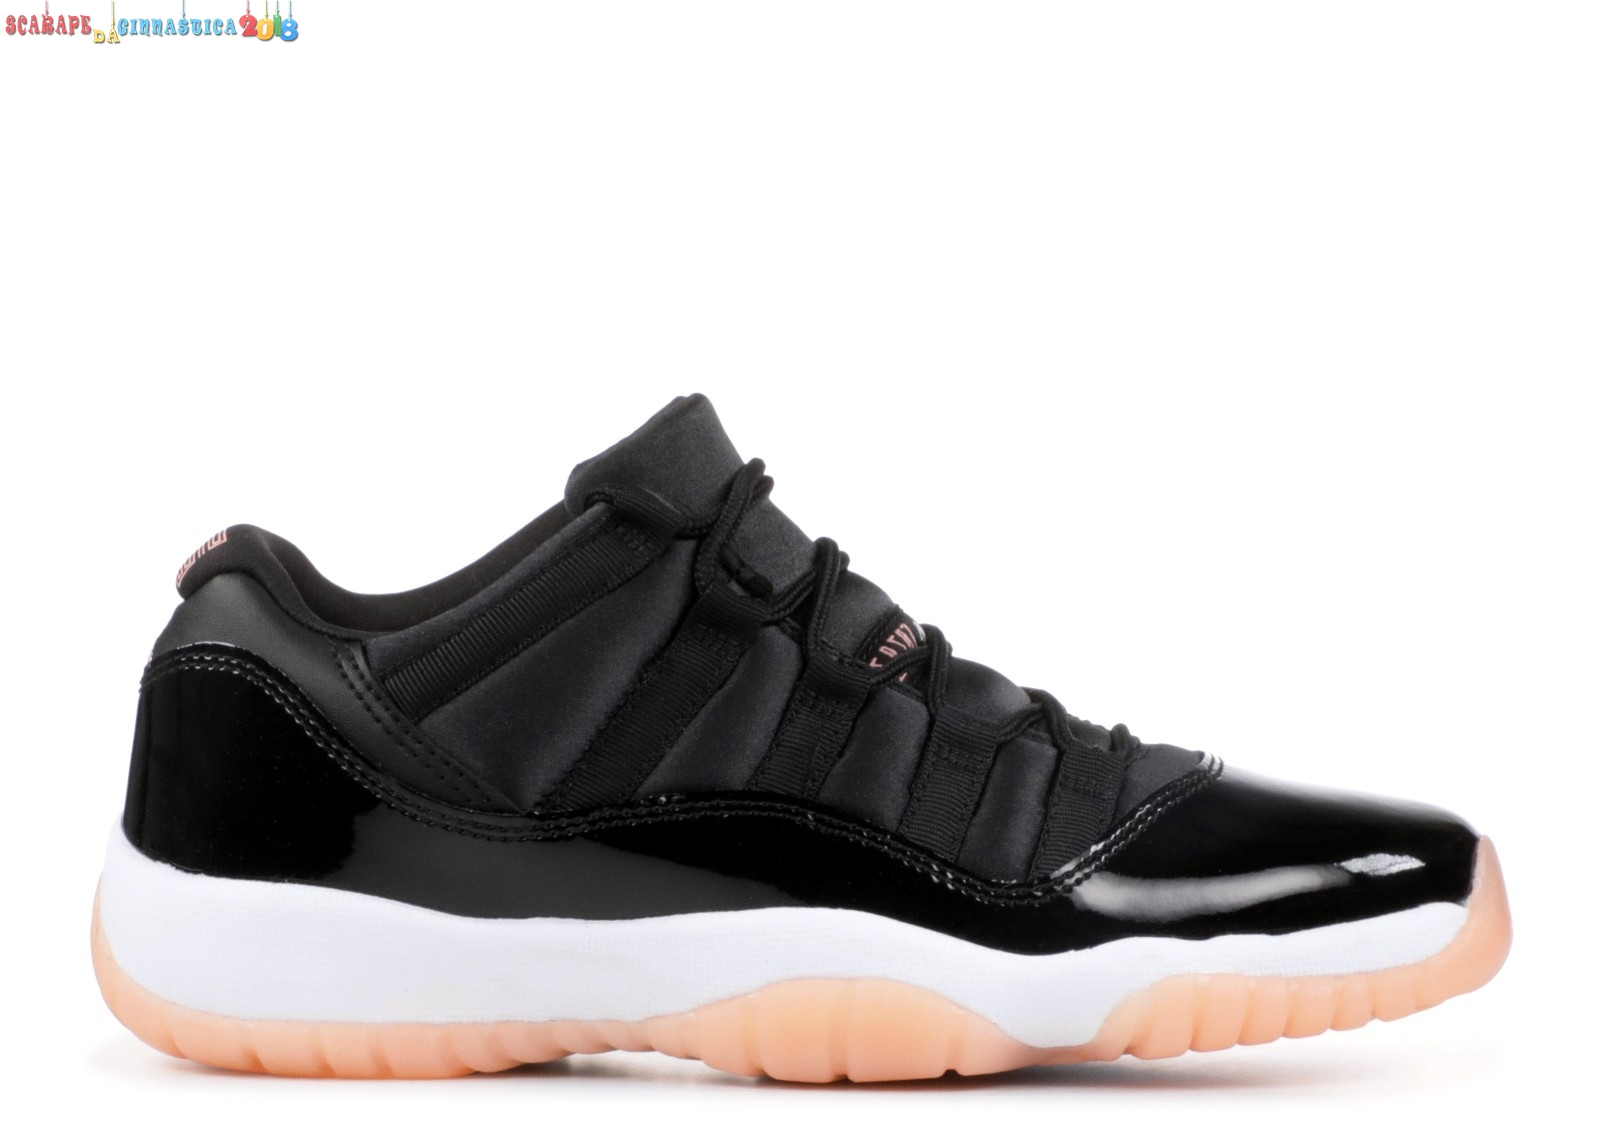 "Comprare Air Jordan 11 Retro Low GG ""Coral"" Nero Bianca (580521-013) Replica"